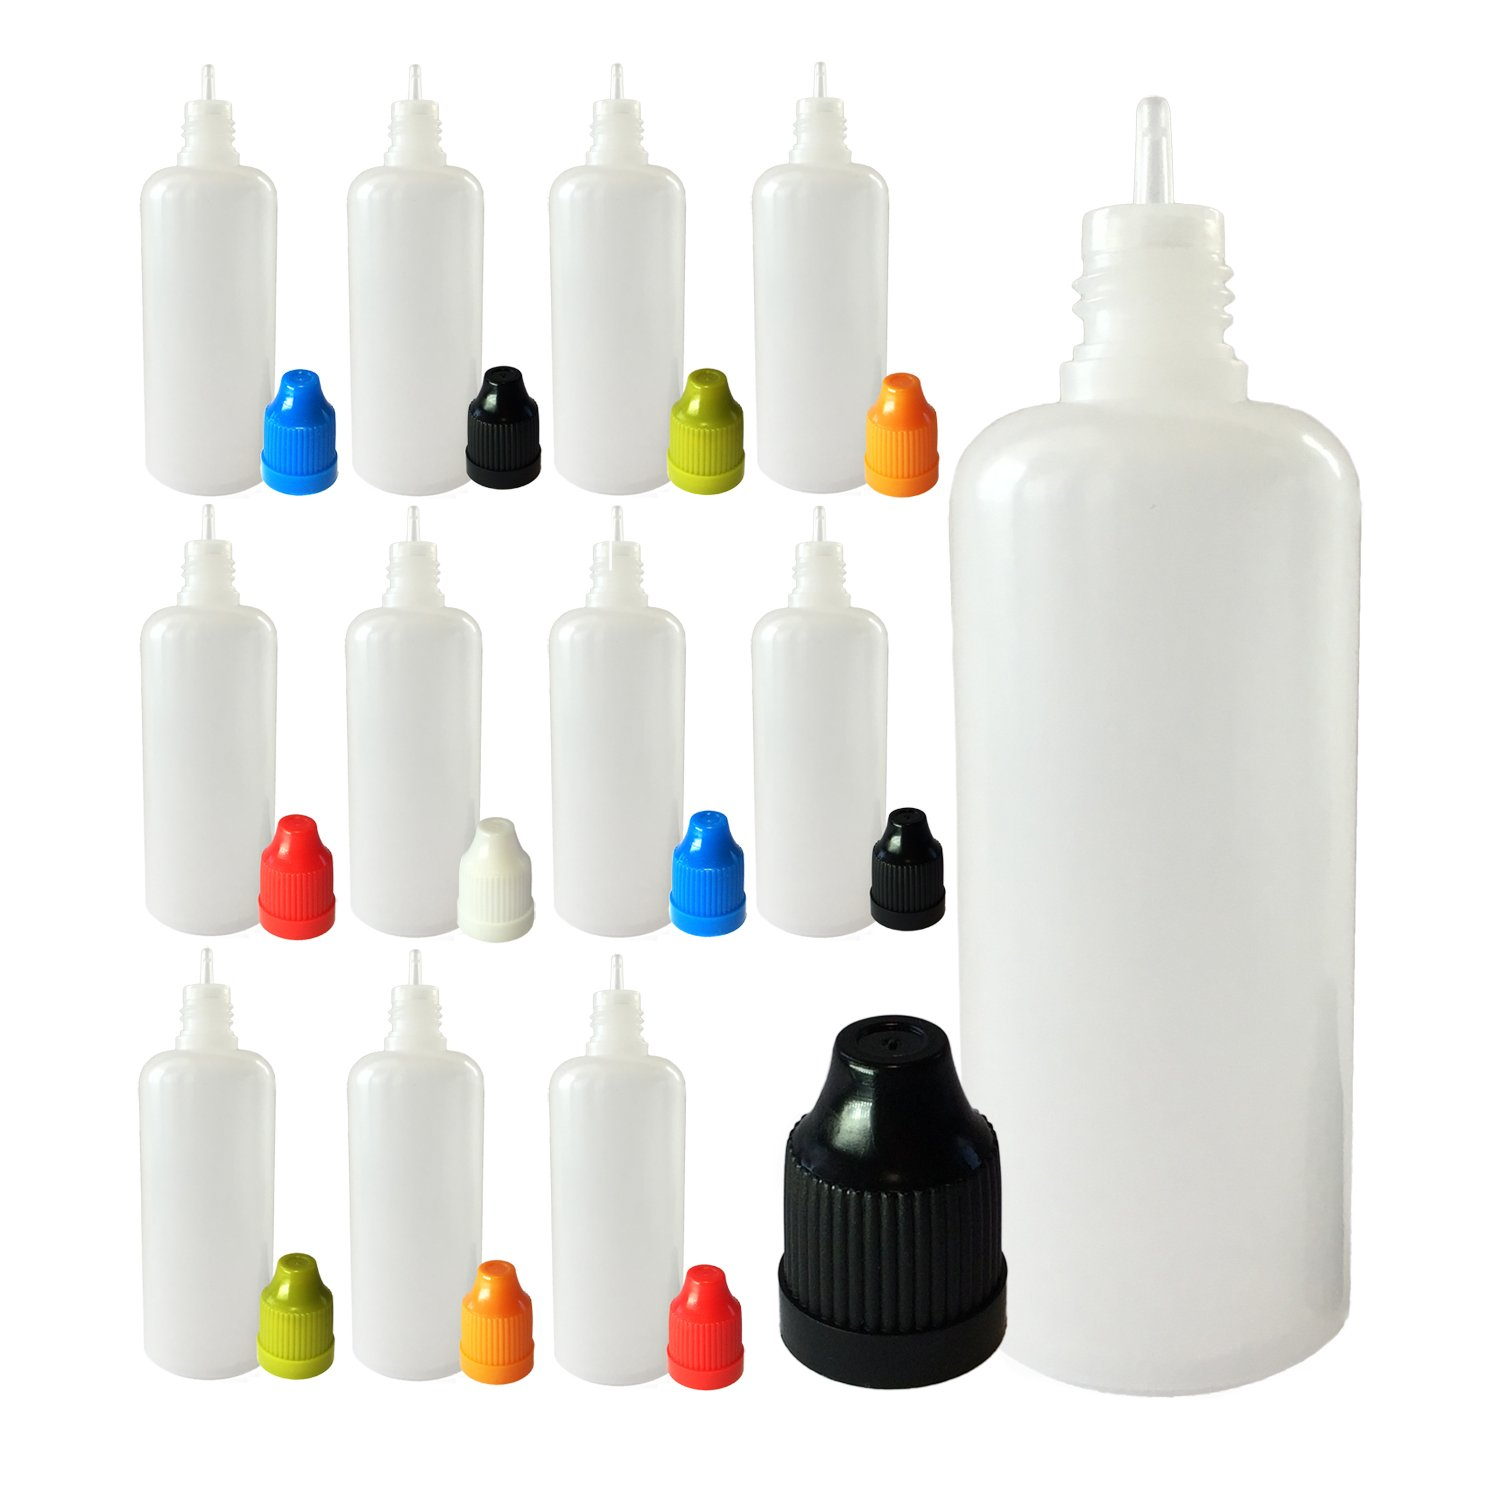 510 Central 60mL LDPE Plastic Thin Tip Dropper Bottles (12 Pack, Multi Color Caps)